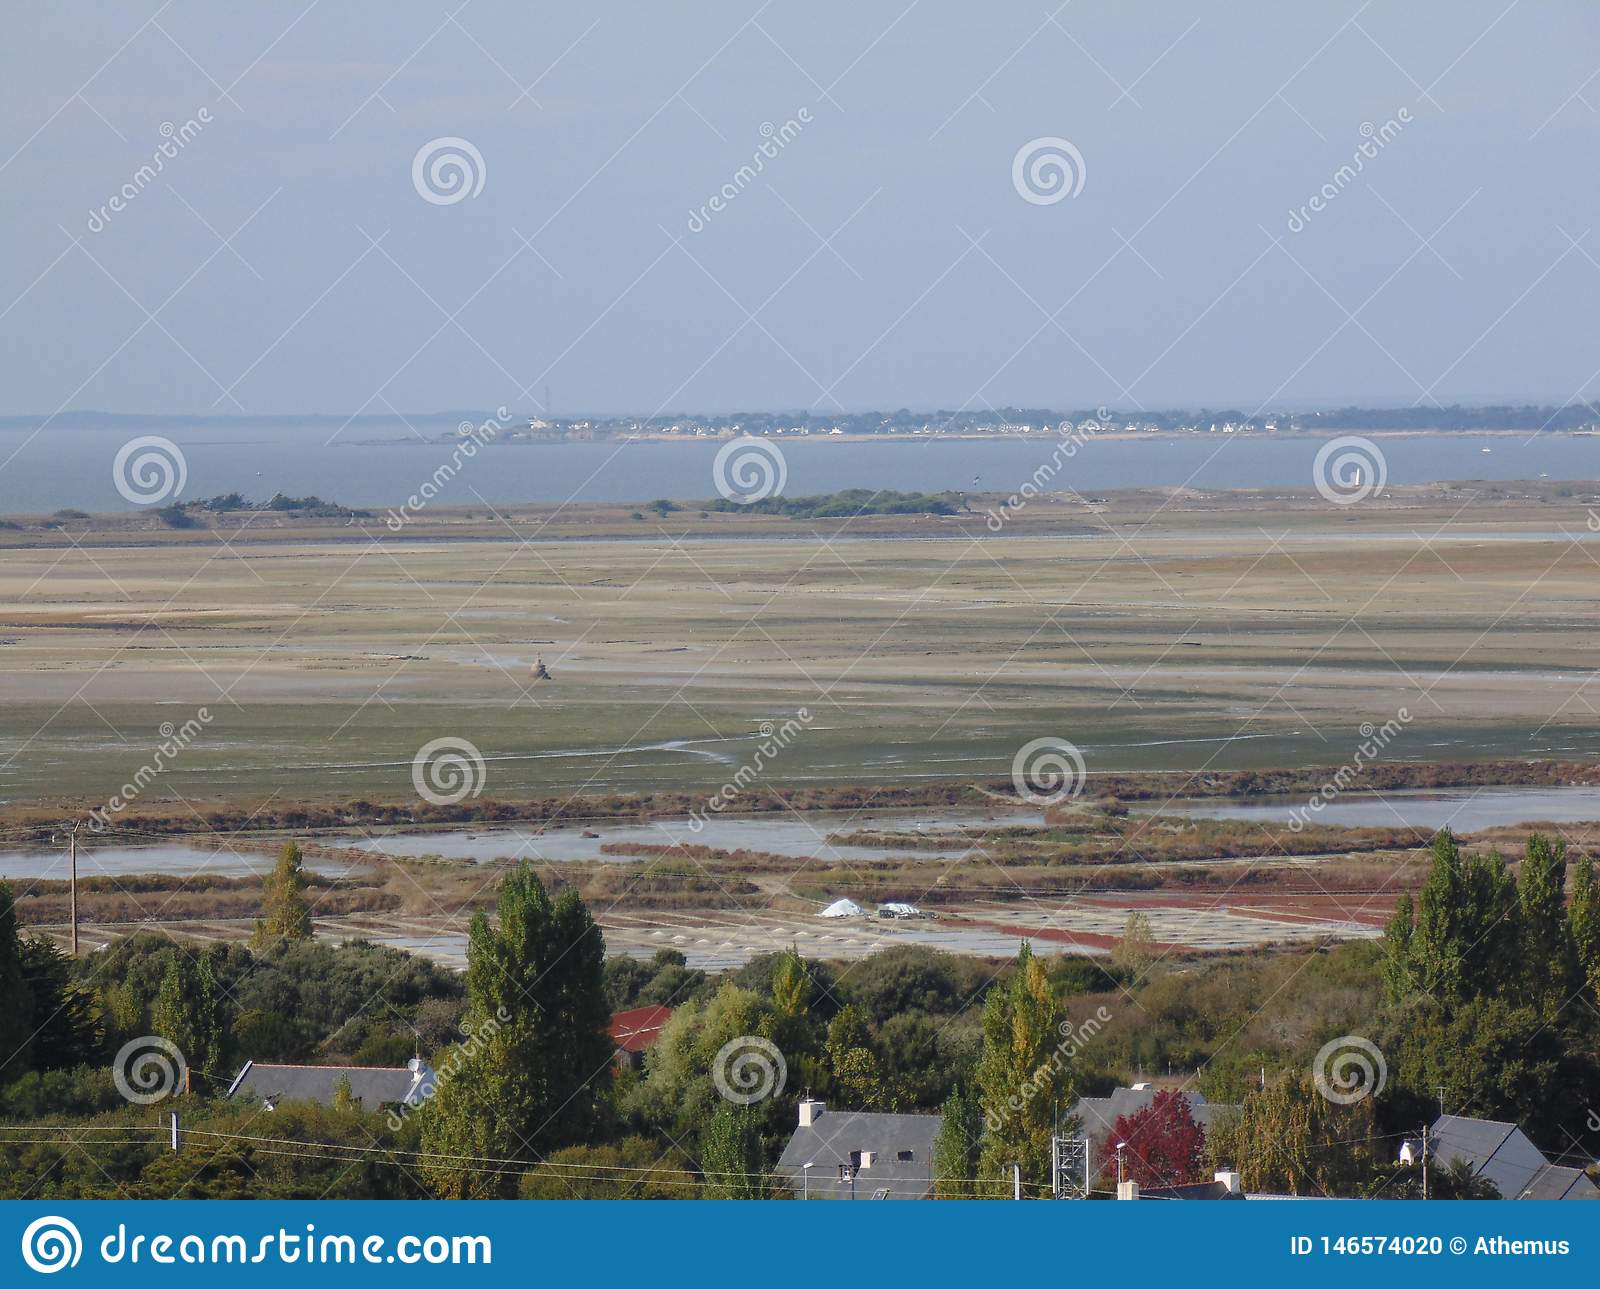 The salt marshes of Croisic in France